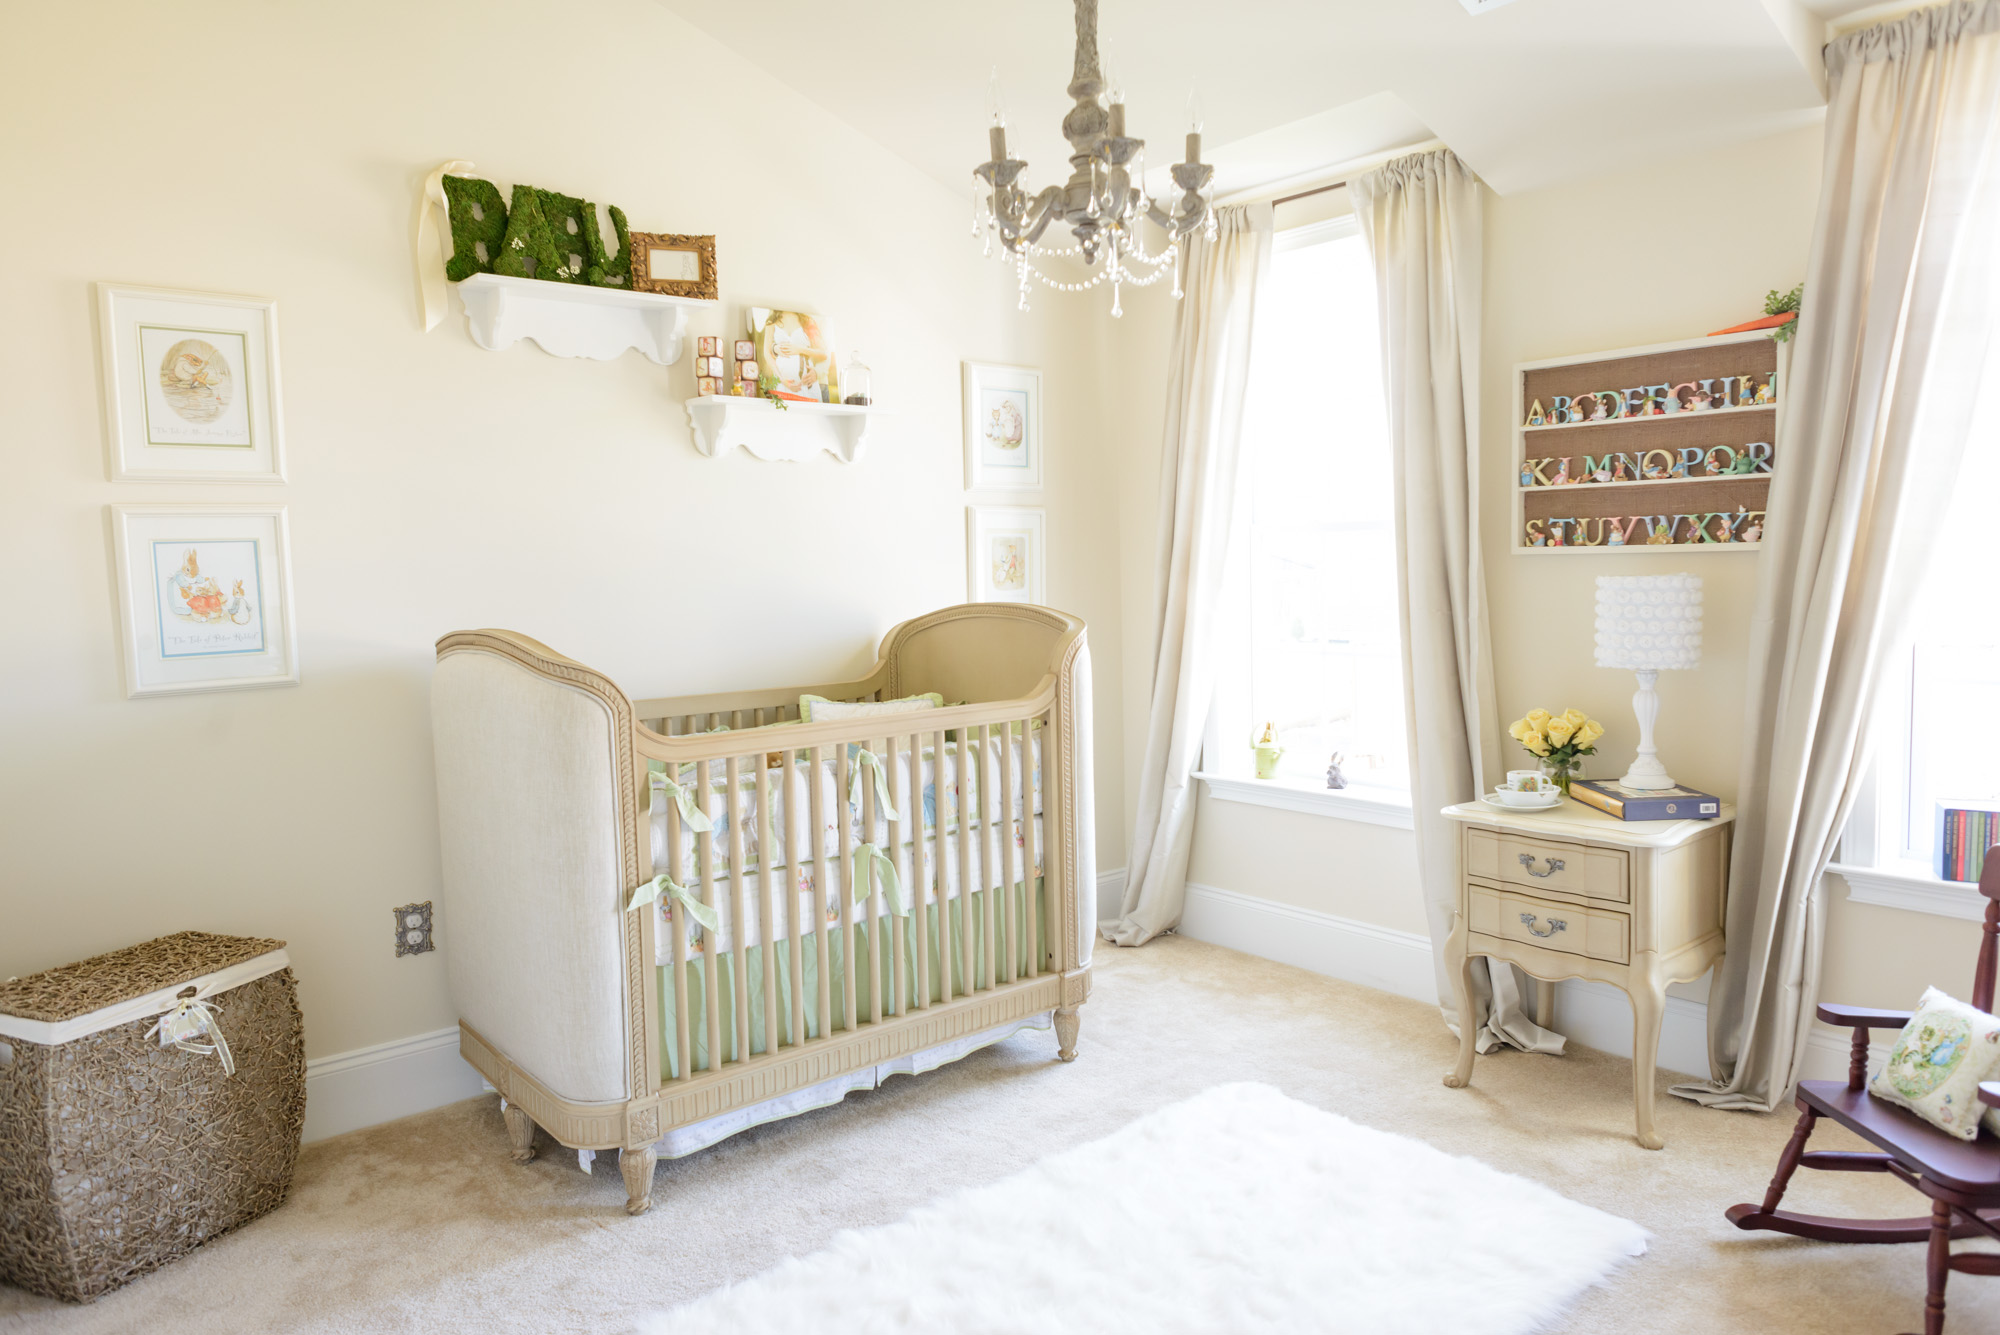 Elegant beatrix potter nursery for baby sophia project for Baby s bedroom ideas